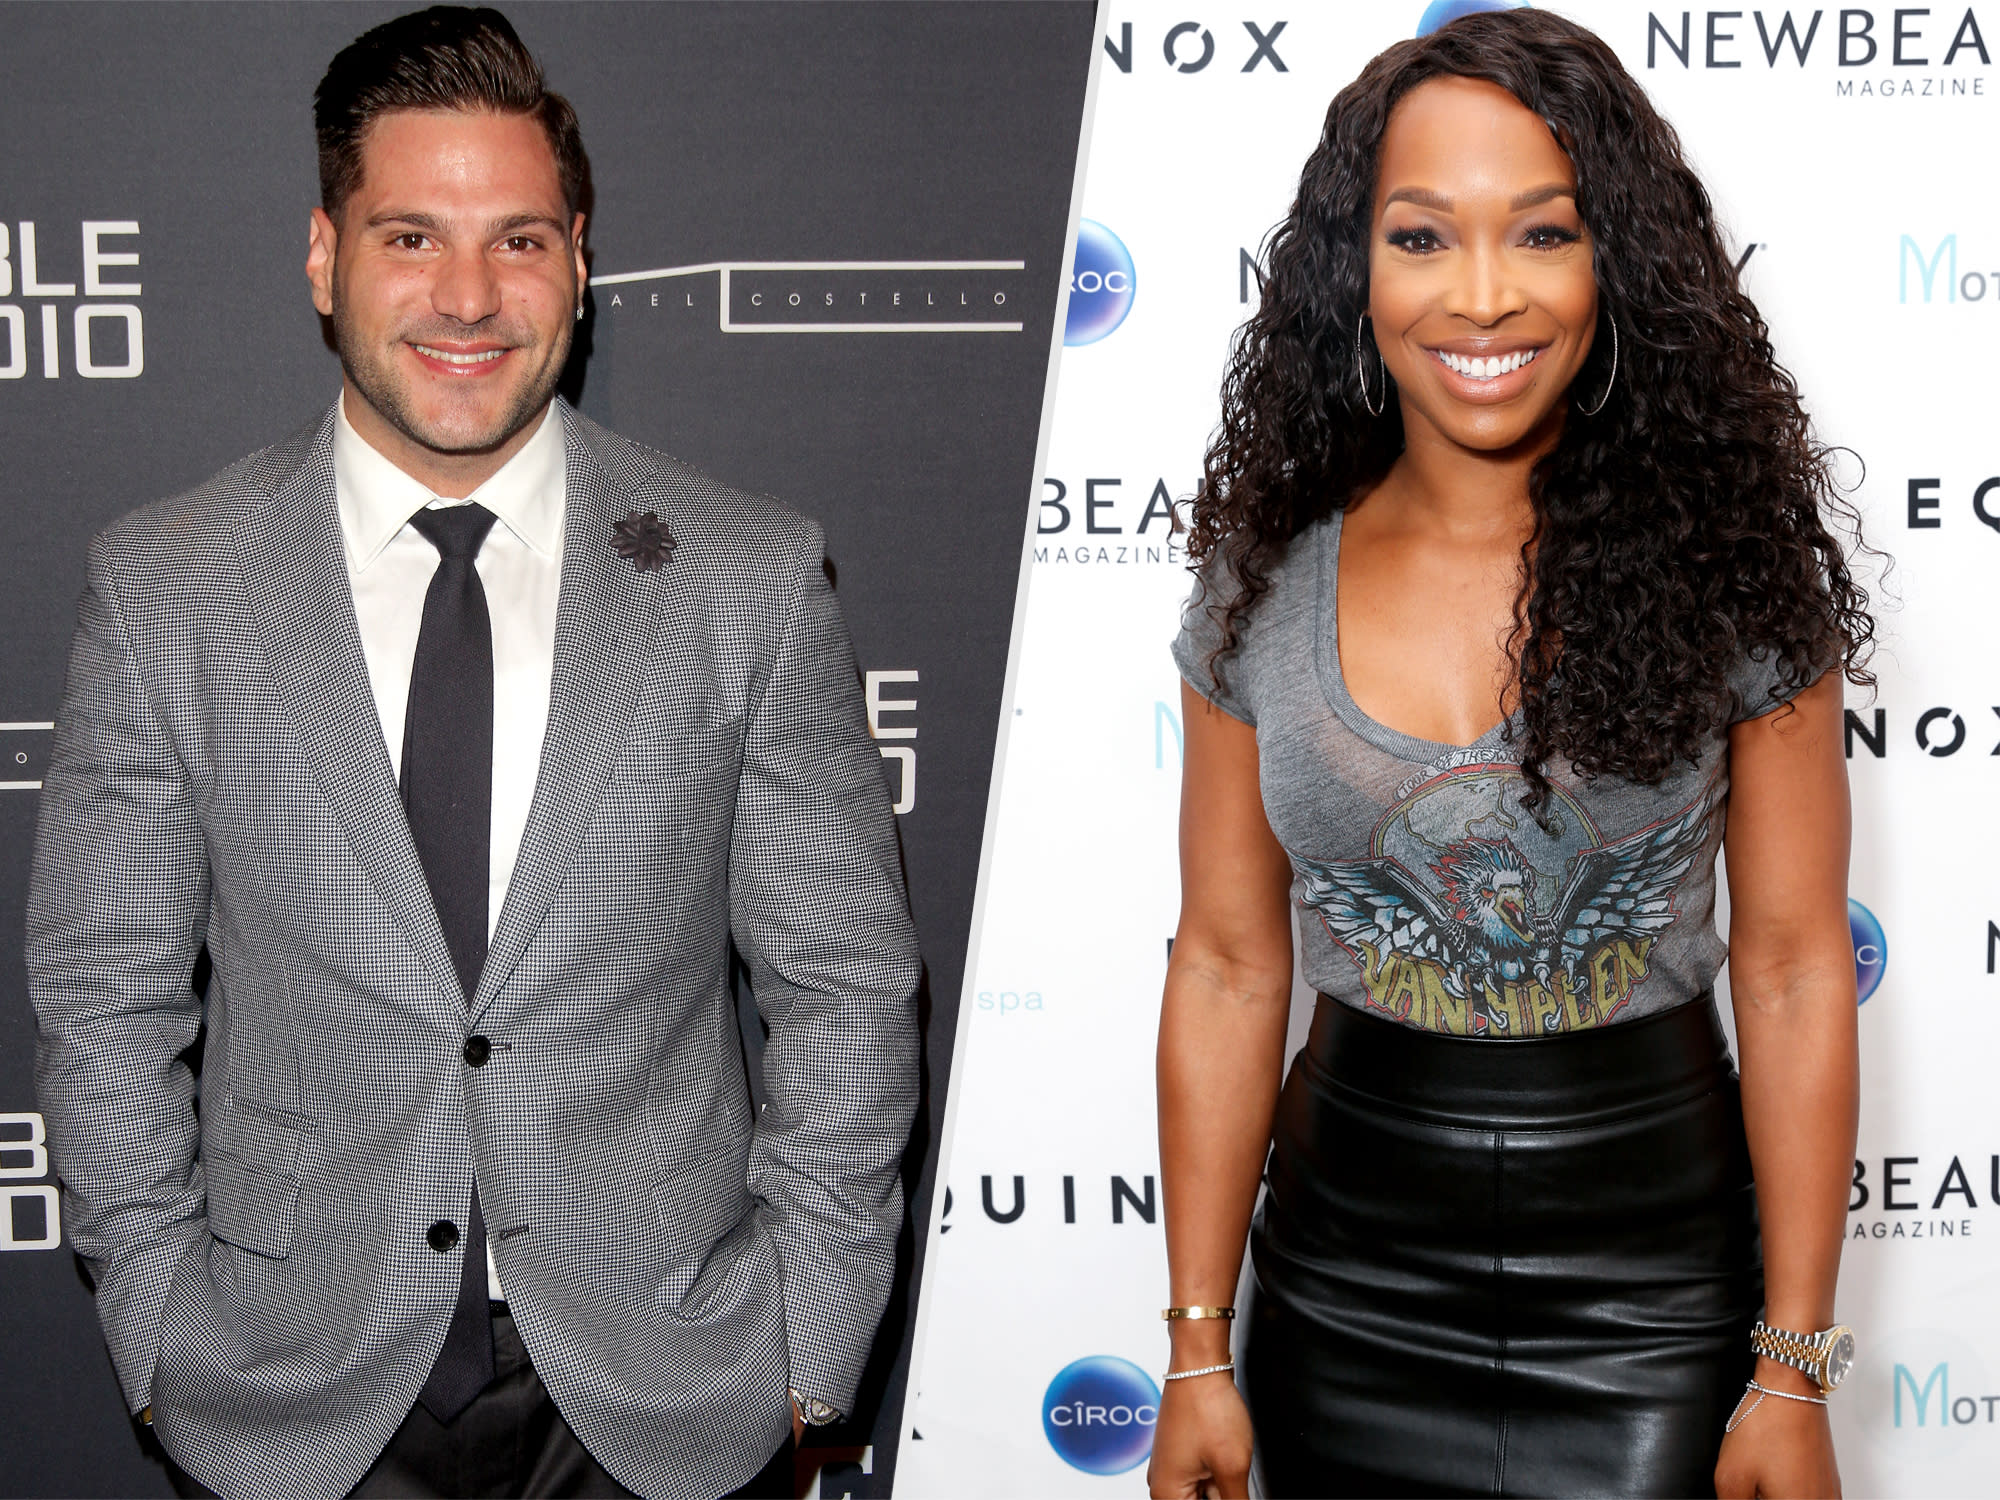 Surprise — Malika Haqq and Jersey Shore Star Ronnie Magro